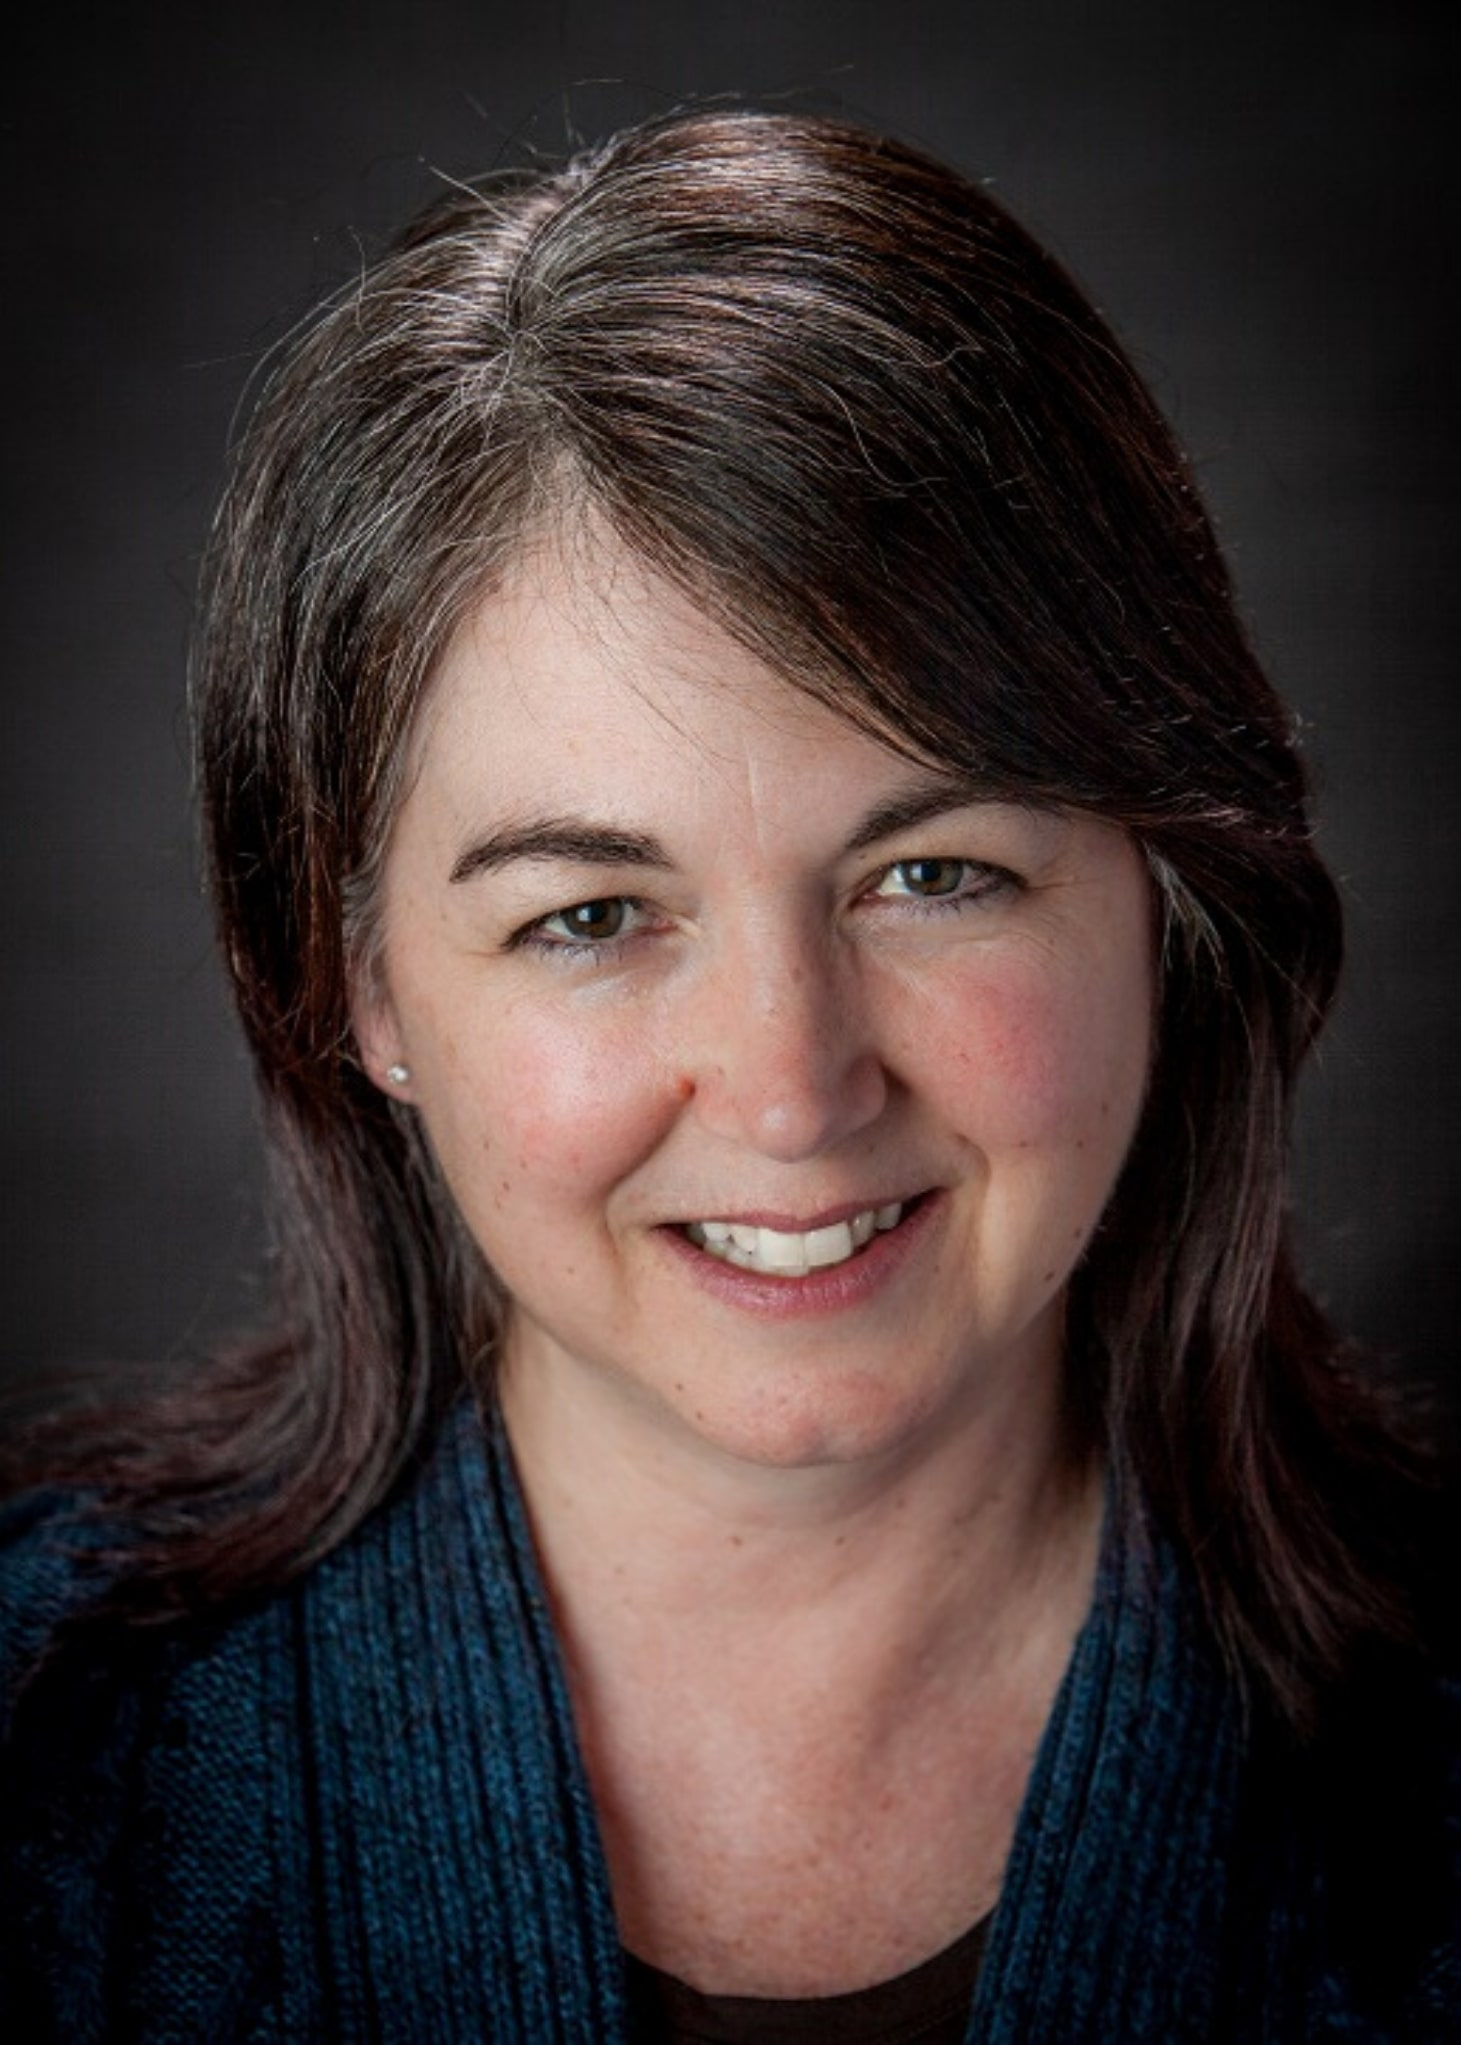 Kim Rossi, Windermere, Real estate, Whidbey Island, Homes, Buy, Sell, Invest, Freeland, trusted realtor